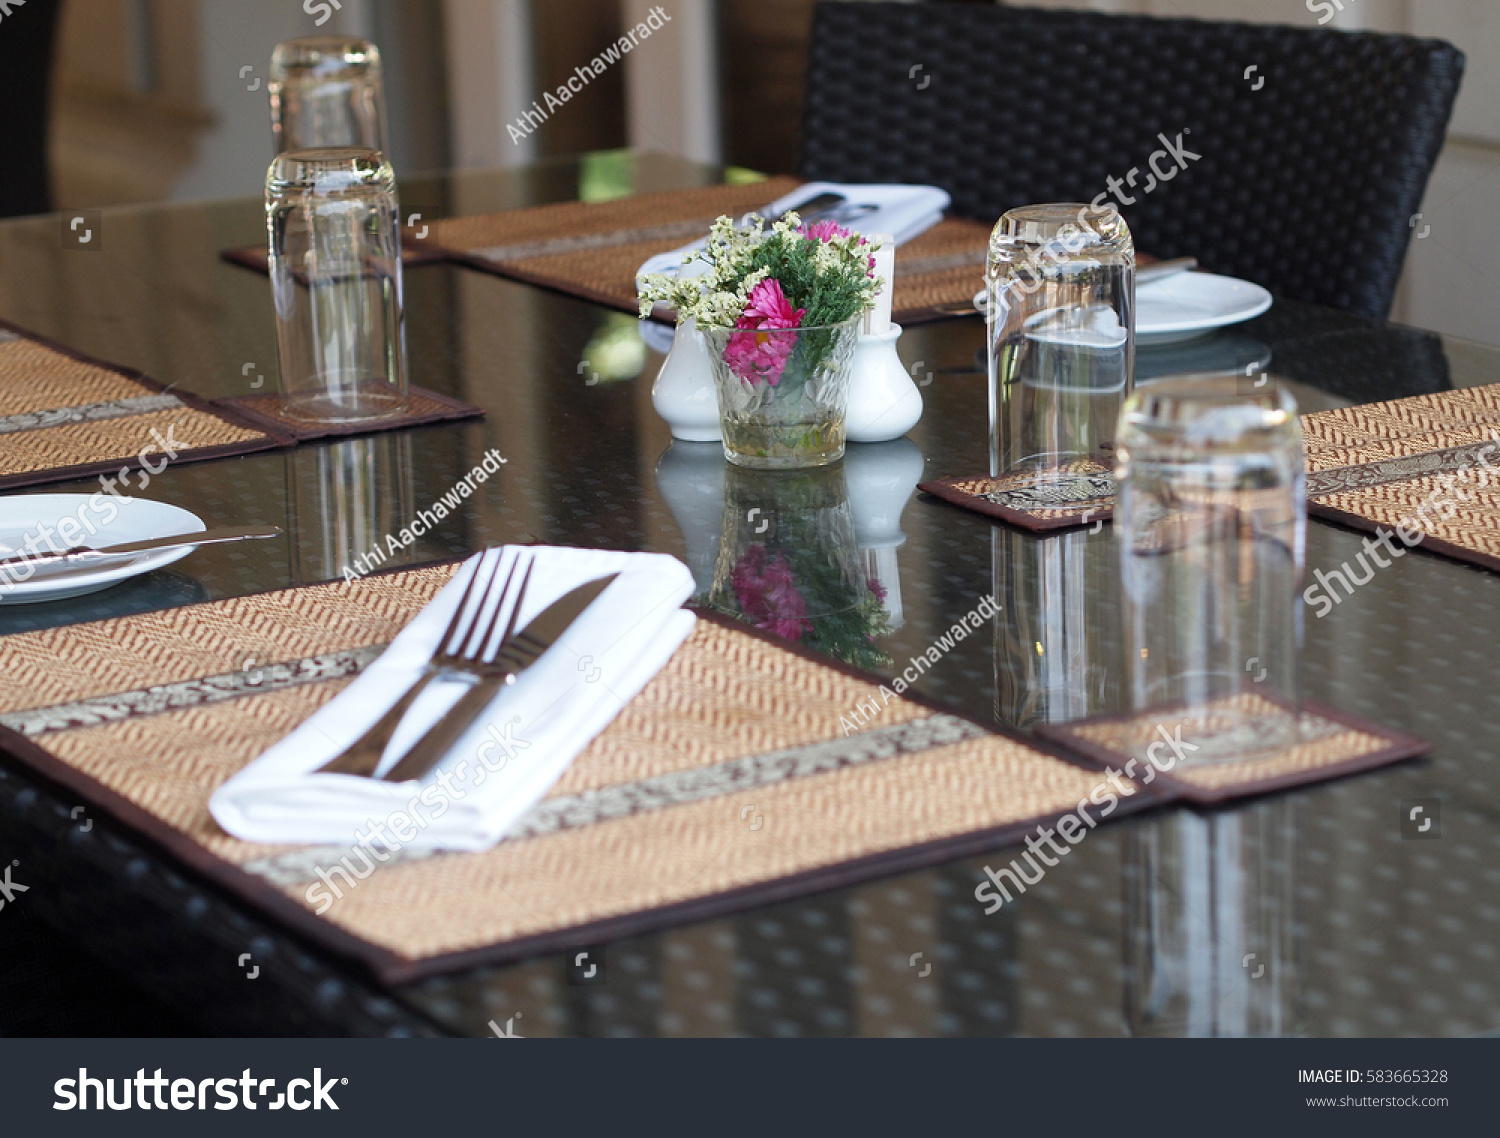 Restaurant Table Setting Asian Contemporary Style & Restaurant Table Setting Asian Contemporary Style Stock Photo ...